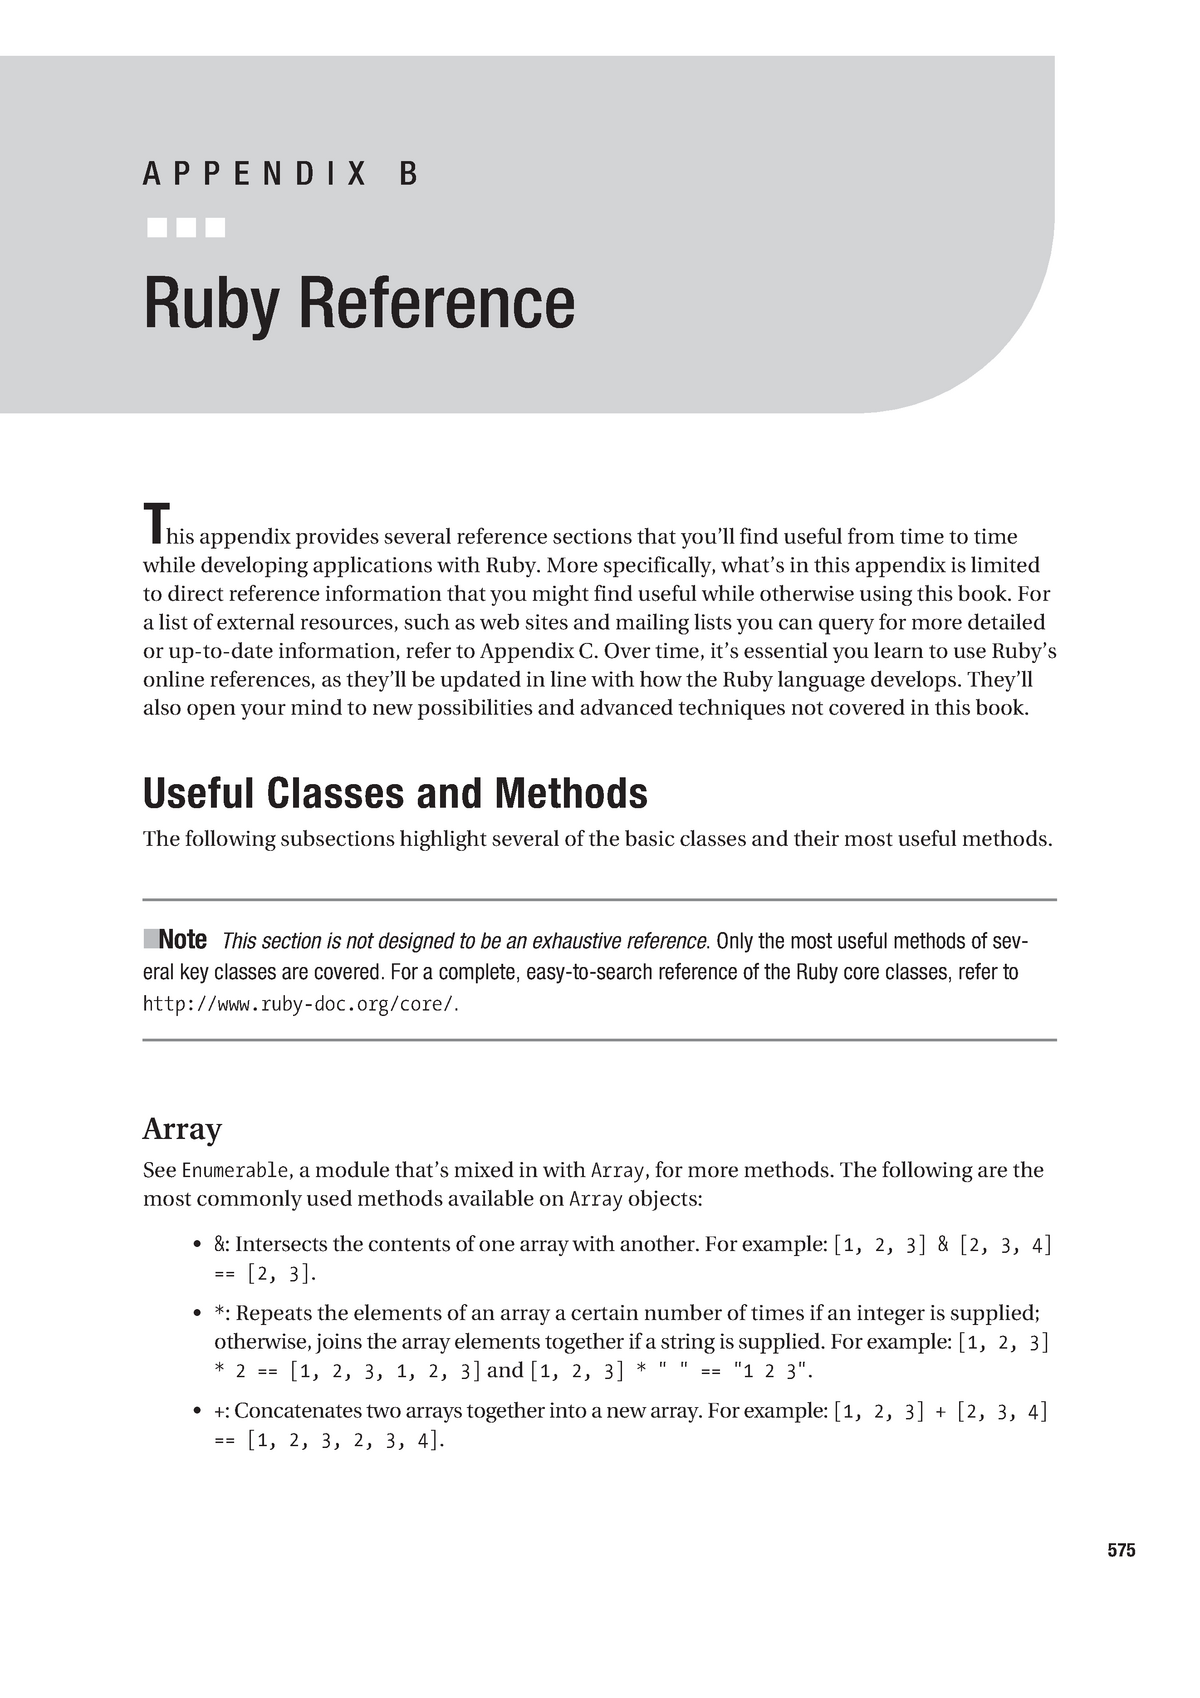 Appendix B - Ruby Reference - CAB403: Systems Programming